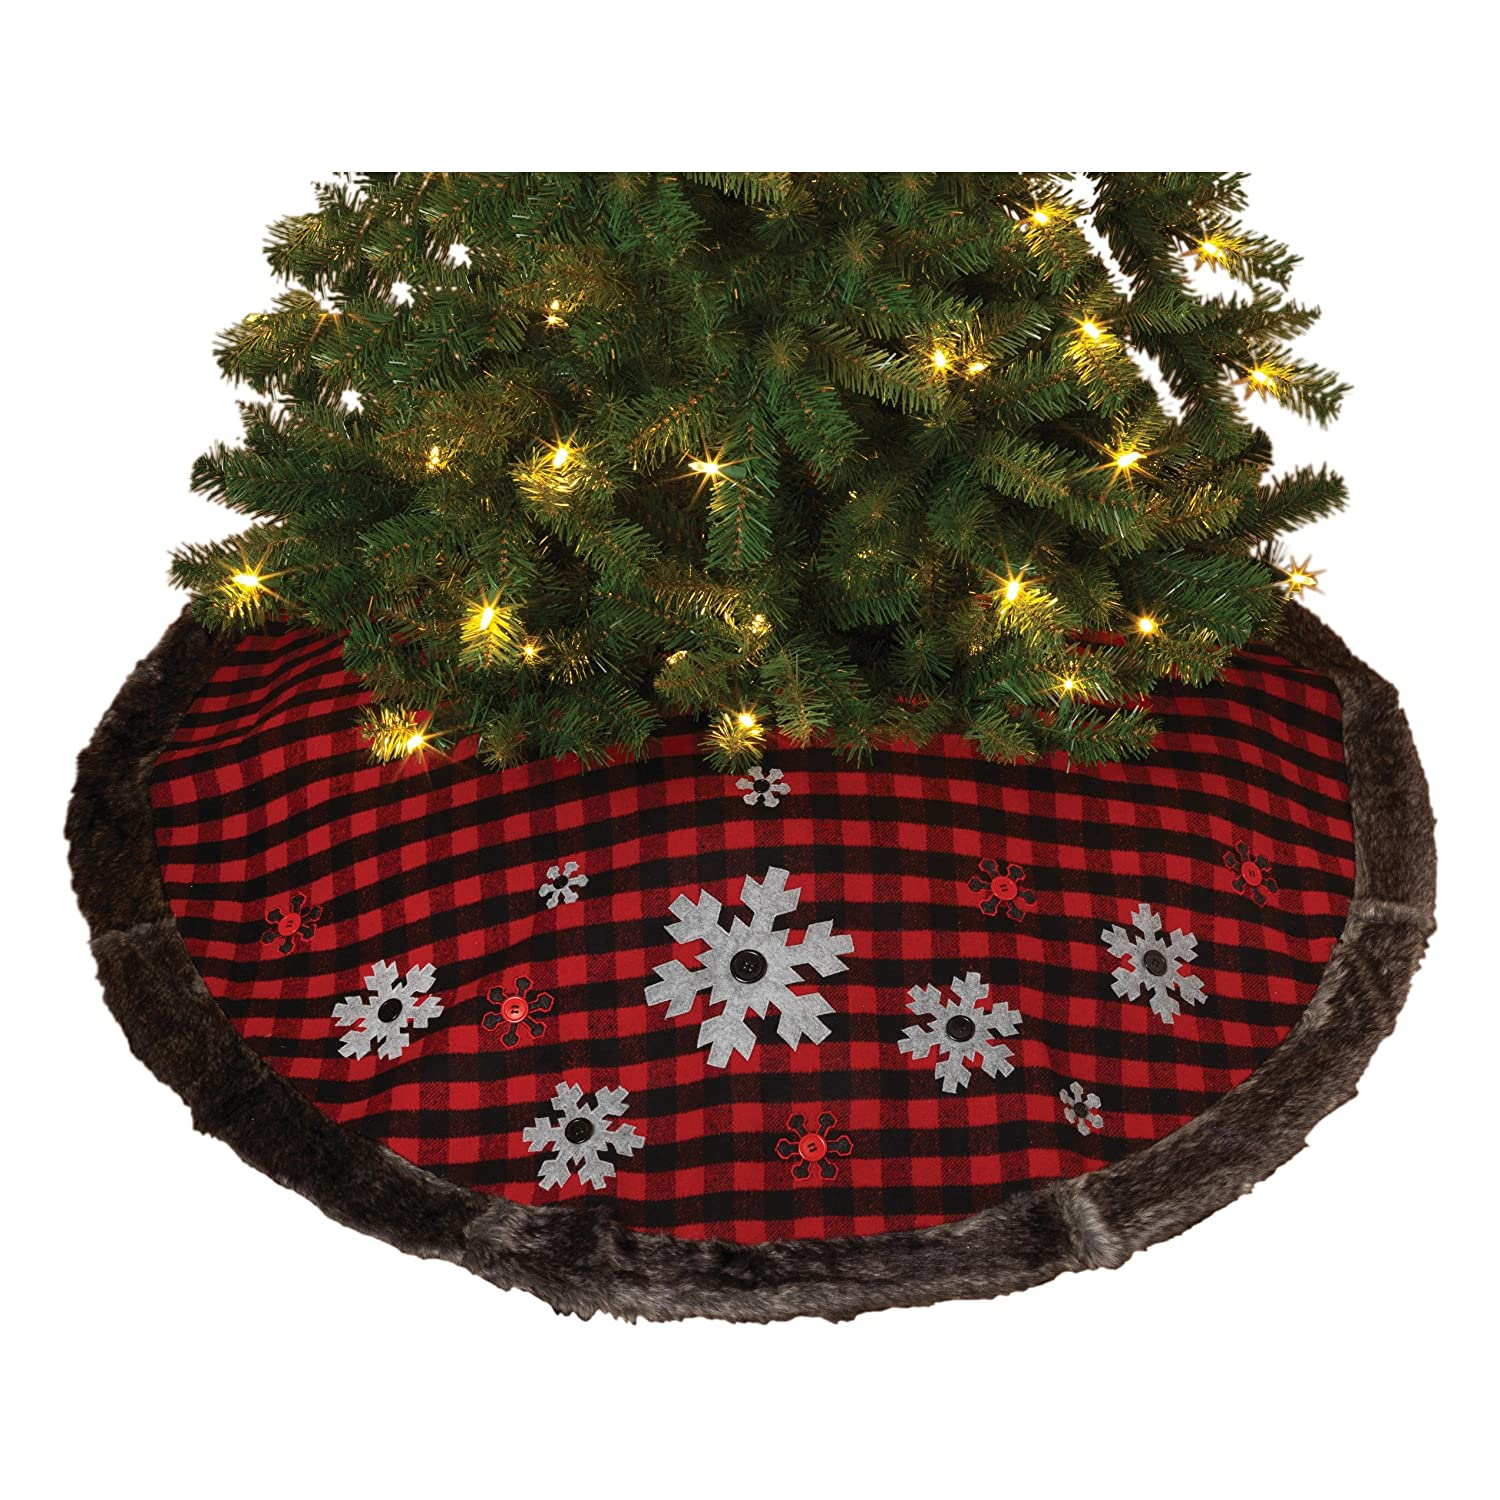 Multicolor 12InL x 2InW x 27.5InH GIL 48D Plaid Tree Skirt w//Faux Christmas